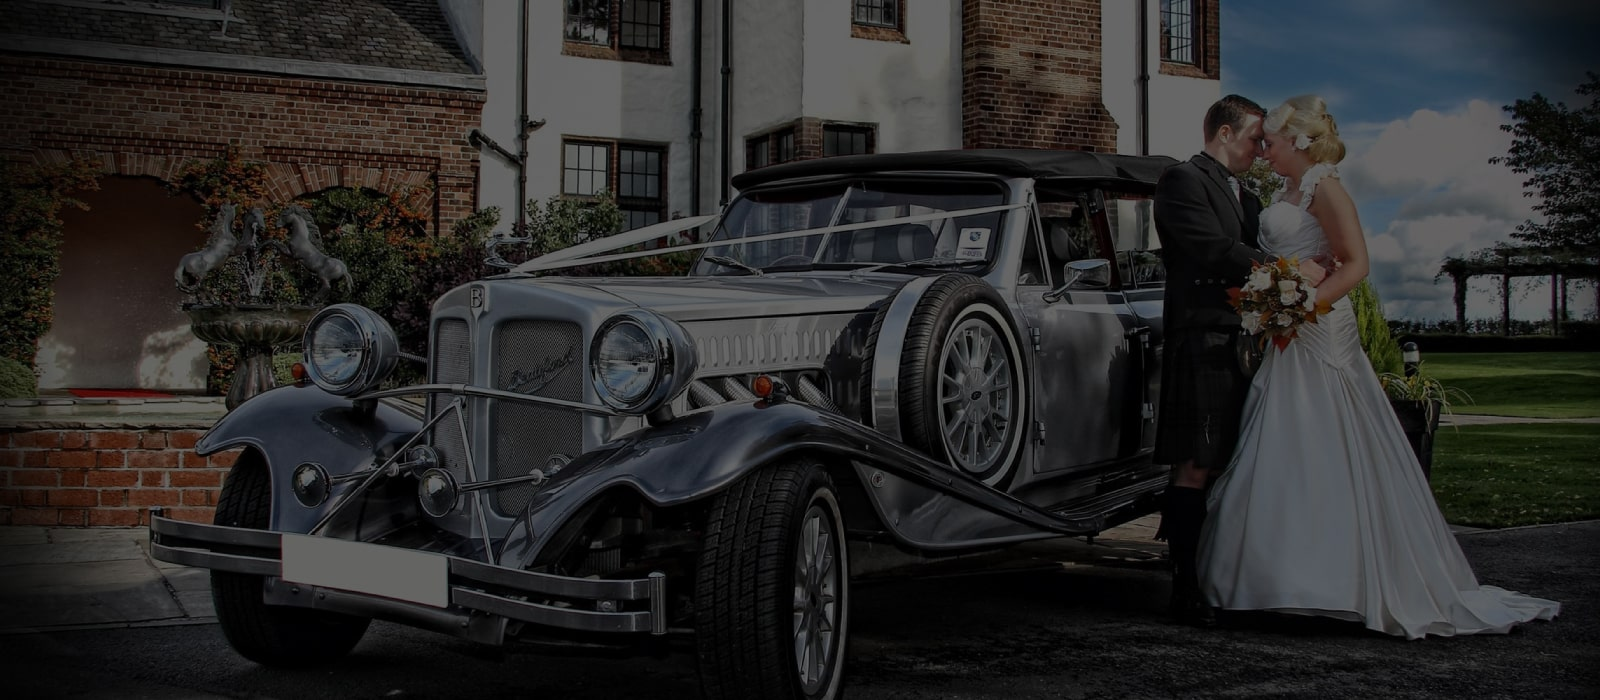 Wedding Car Hire UK